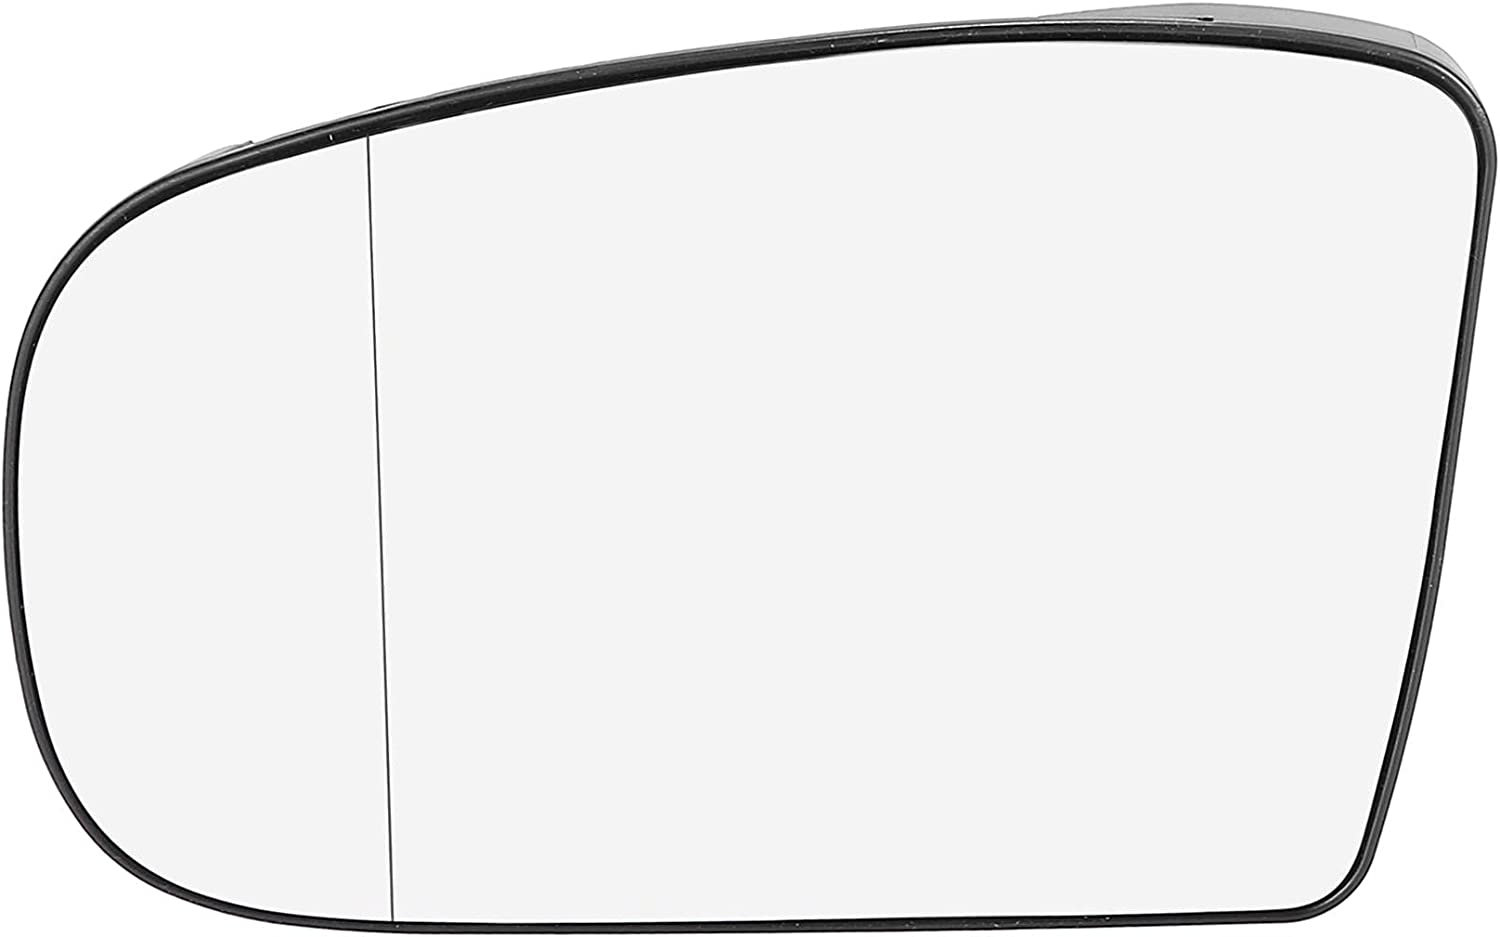 X AUTOHAUX Car San Antonio Mall Left Rearview Mirror 810 A220 Glass f 0321 Heated Limited price